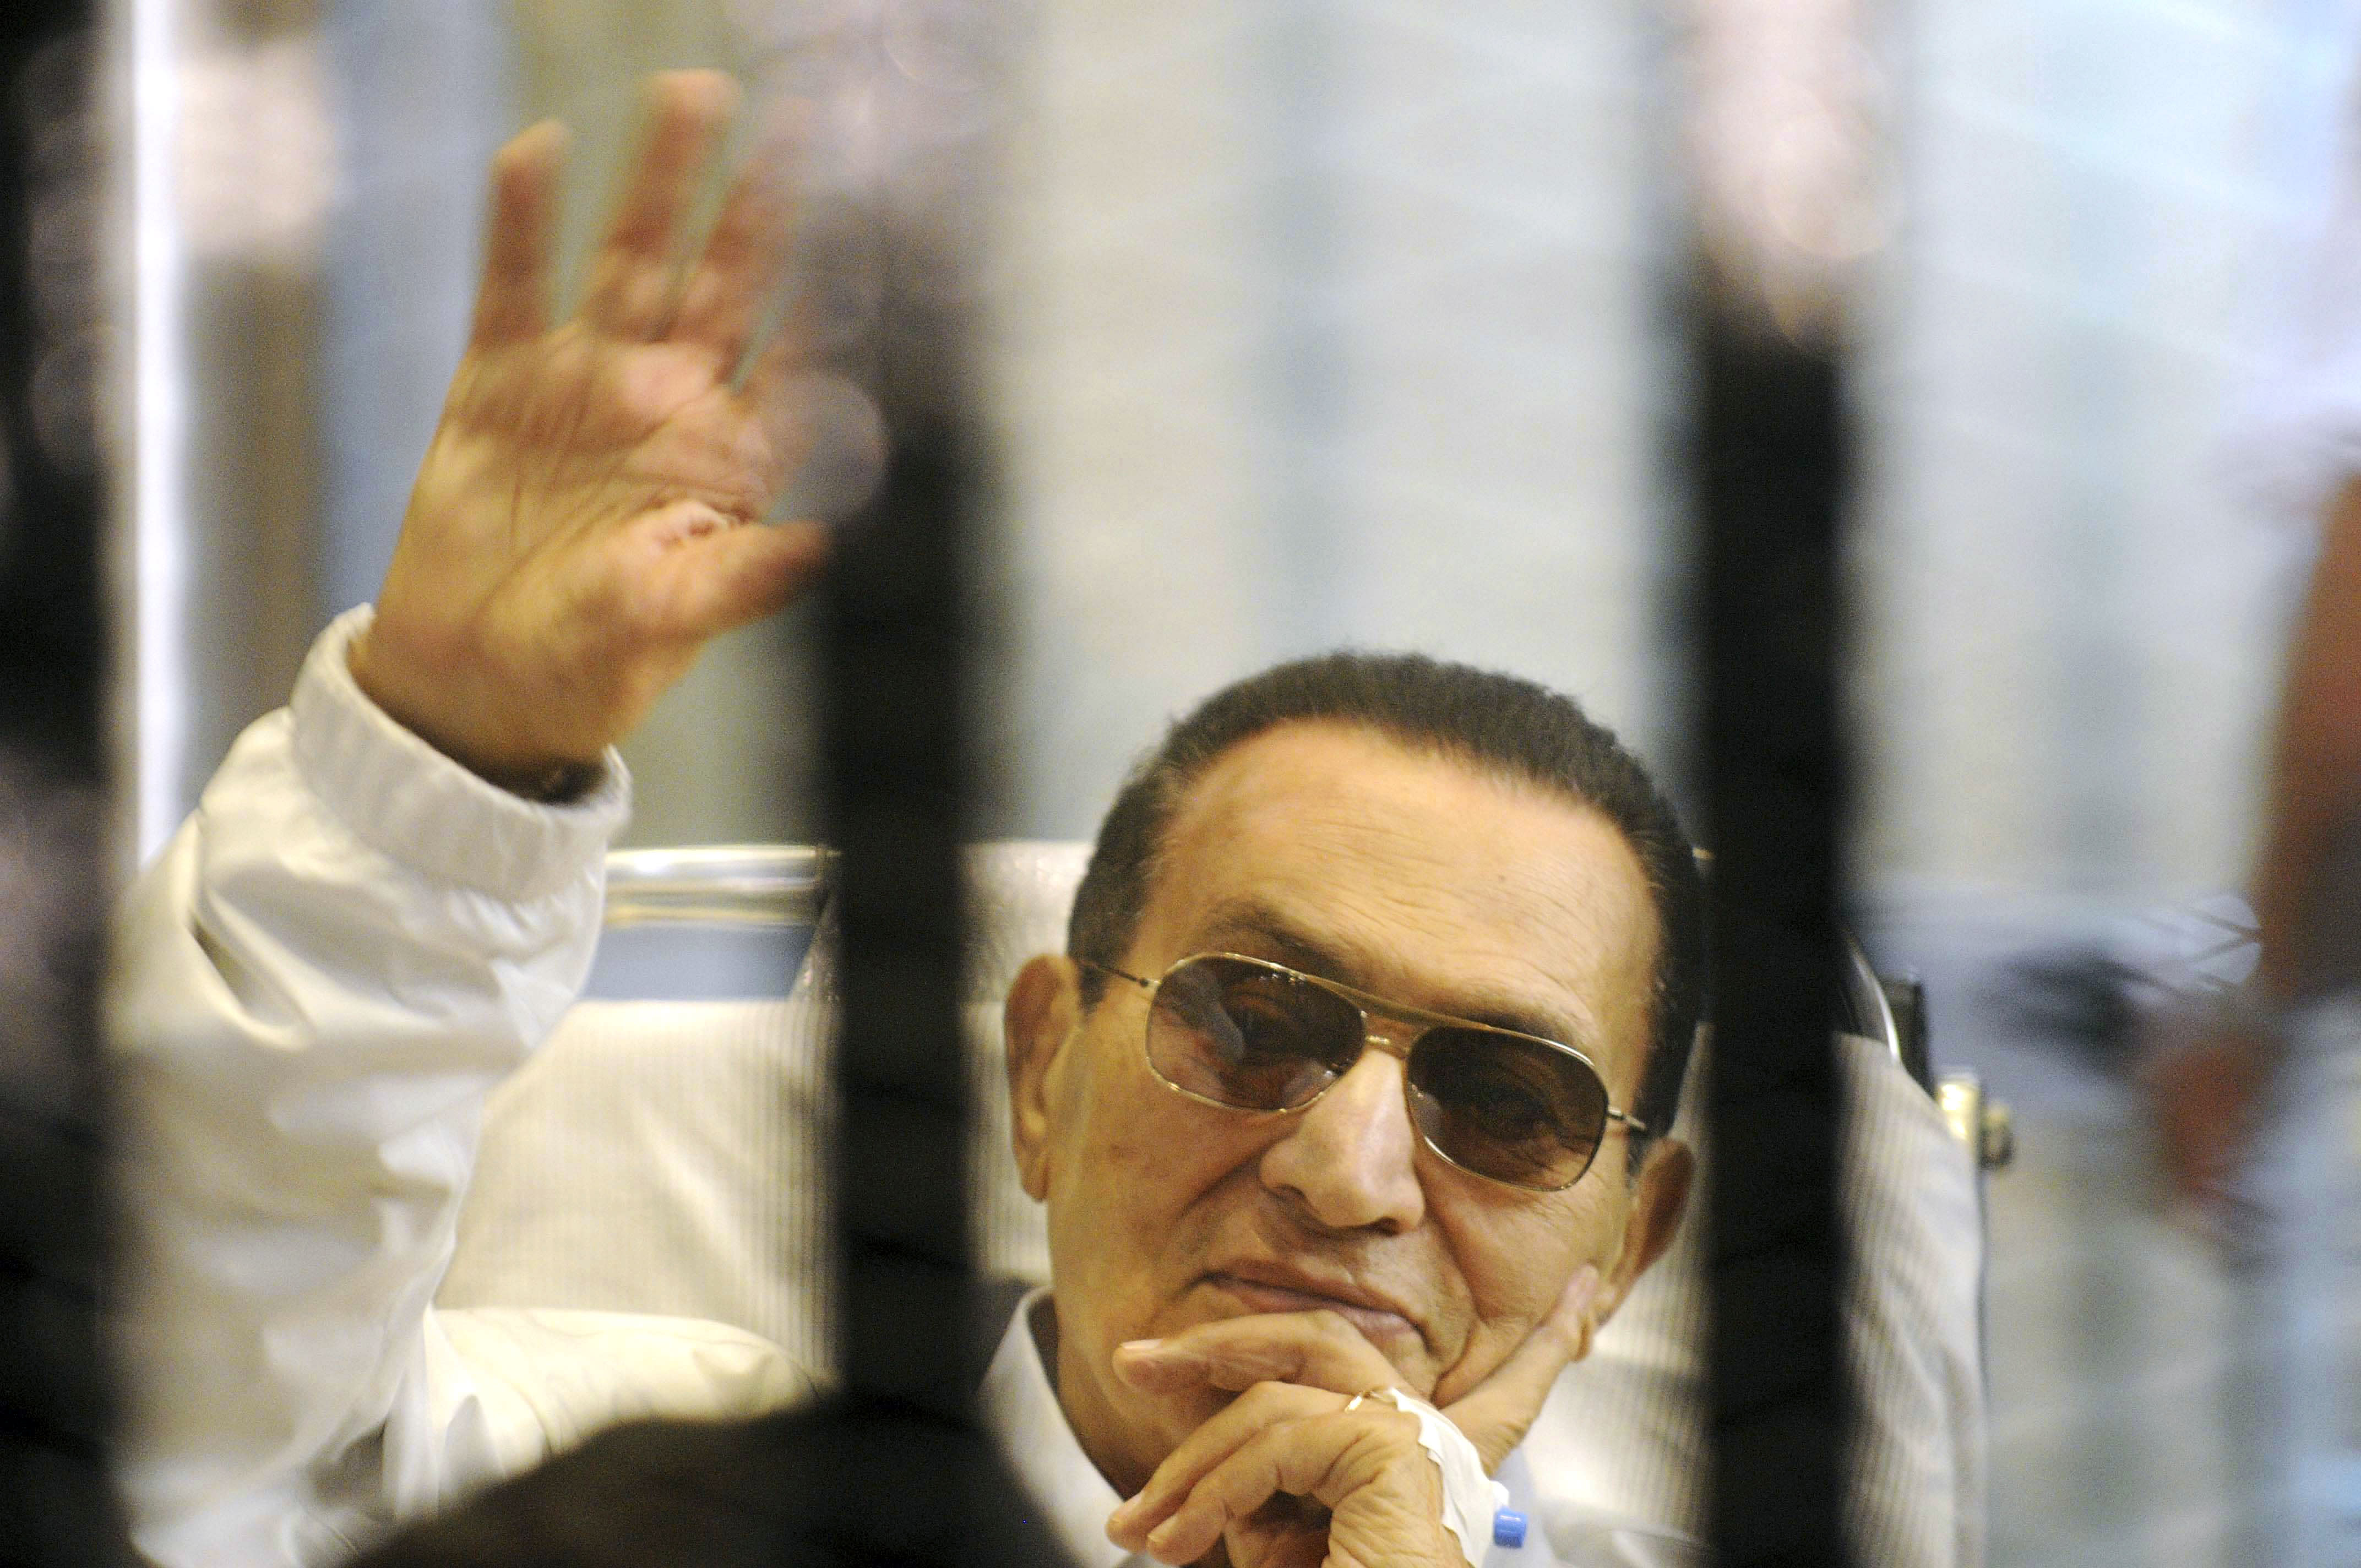 FILE - In this Saturday, April 13, 2013 file photo, former Egyptian President Hosni Mubarak waves to his supporters from behind bars as he attends a hearing in his retrial on appeal in Cairo, Egypt. A public prosecutor in Egypt has referred ousted longtime autocrat Hosni Mubarak to a new trial on charges of embezzling state funds to build and renovate family homes. Egypt's state news agency said Mubarak and his sons have misappropriated $18 million between 2002 and 2011 to renovate and build homes and offices in seven different areas in Egypt, using state funds. (AP Photo, File)